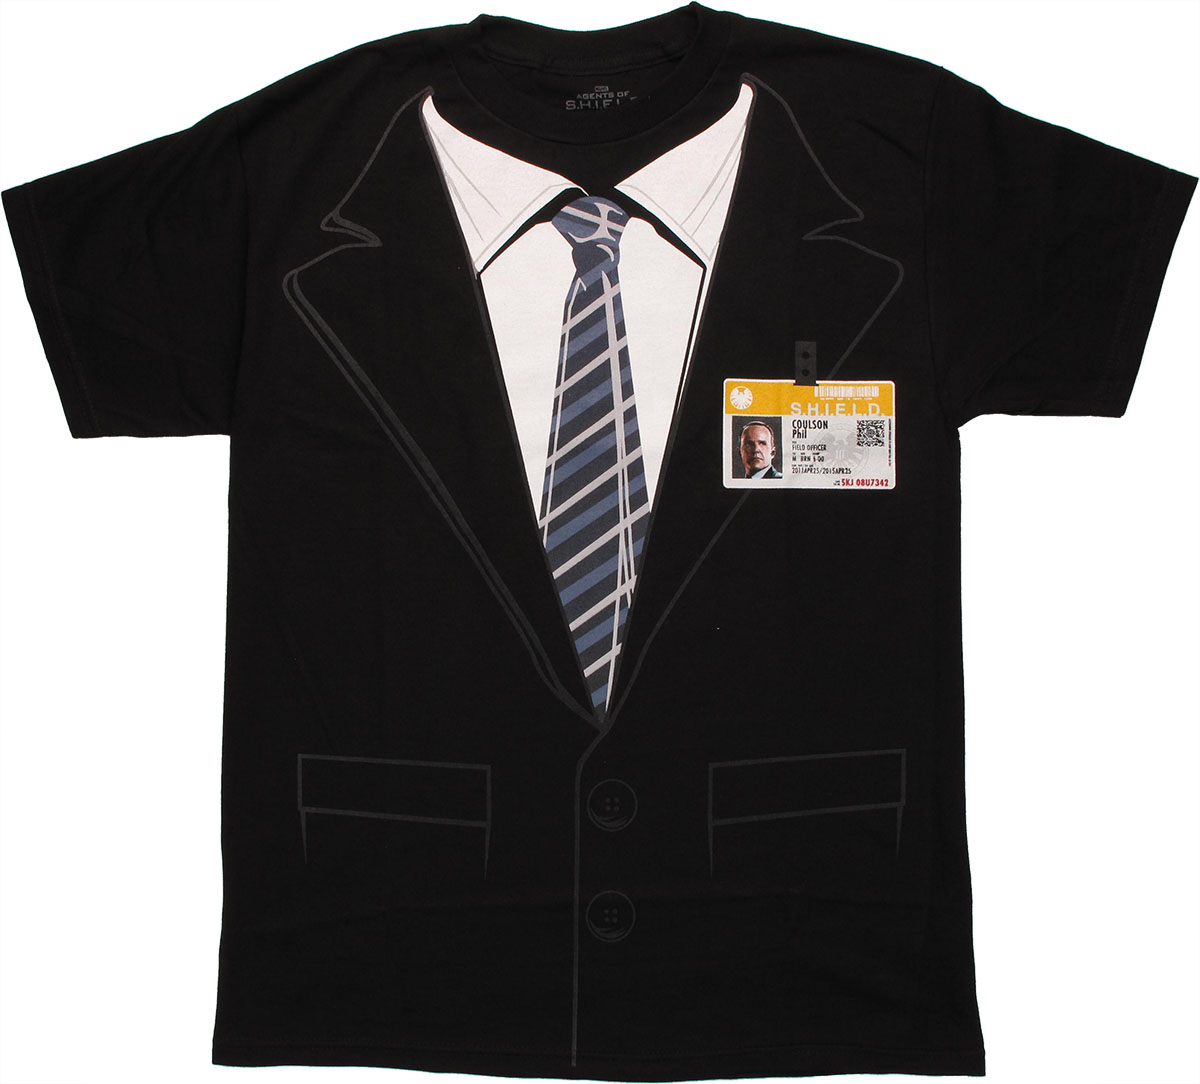 Shield coulson badge costume t shirt for Costume t shirts online